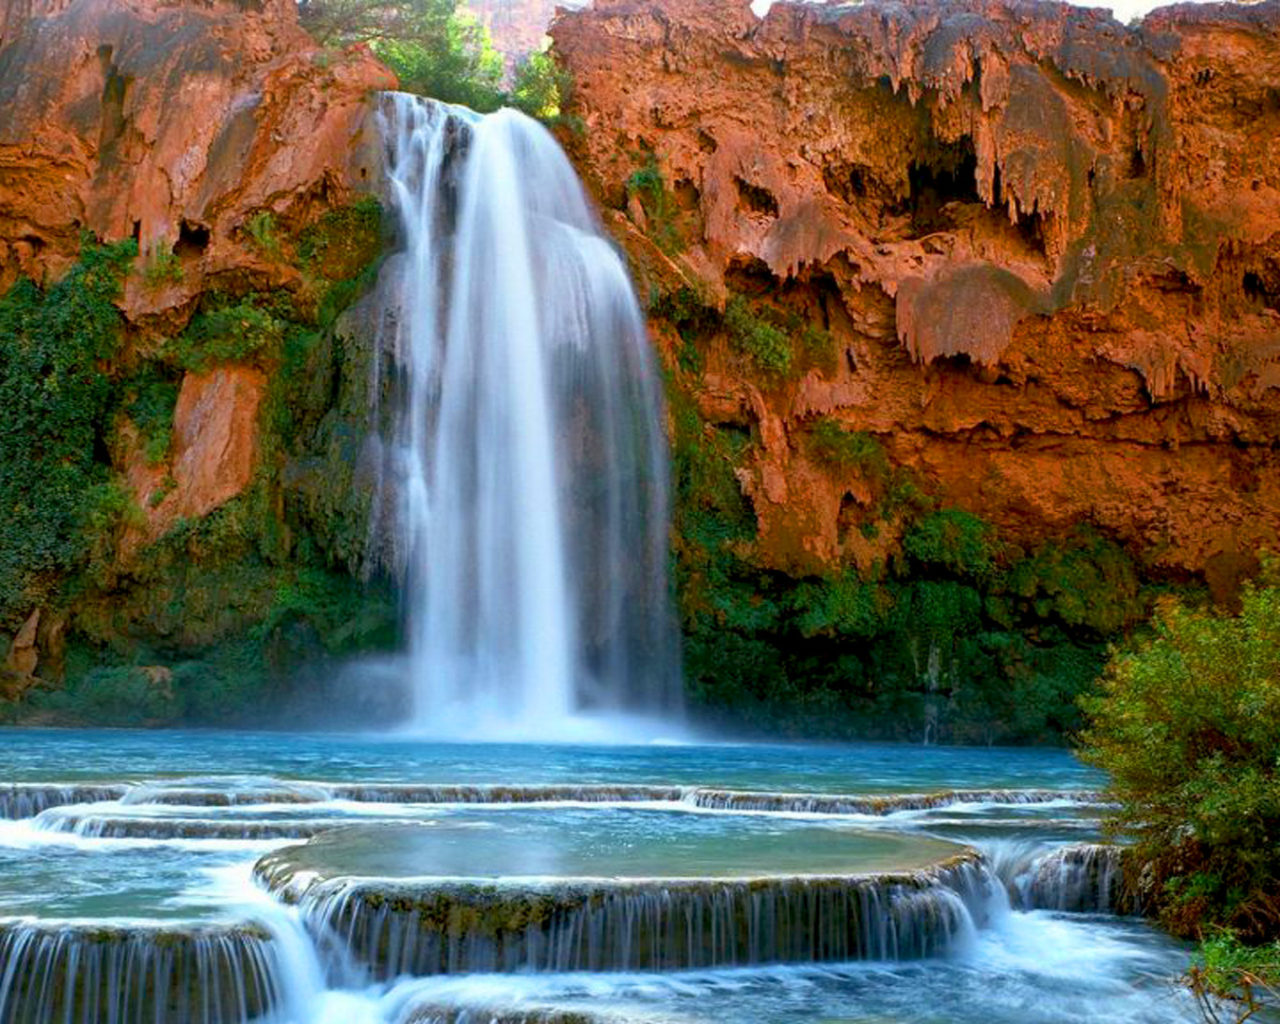 Havasu Falls Arizona Wallpaper Havasu Falls Havasupai Arizona U S Desktop Hd Wallpaper